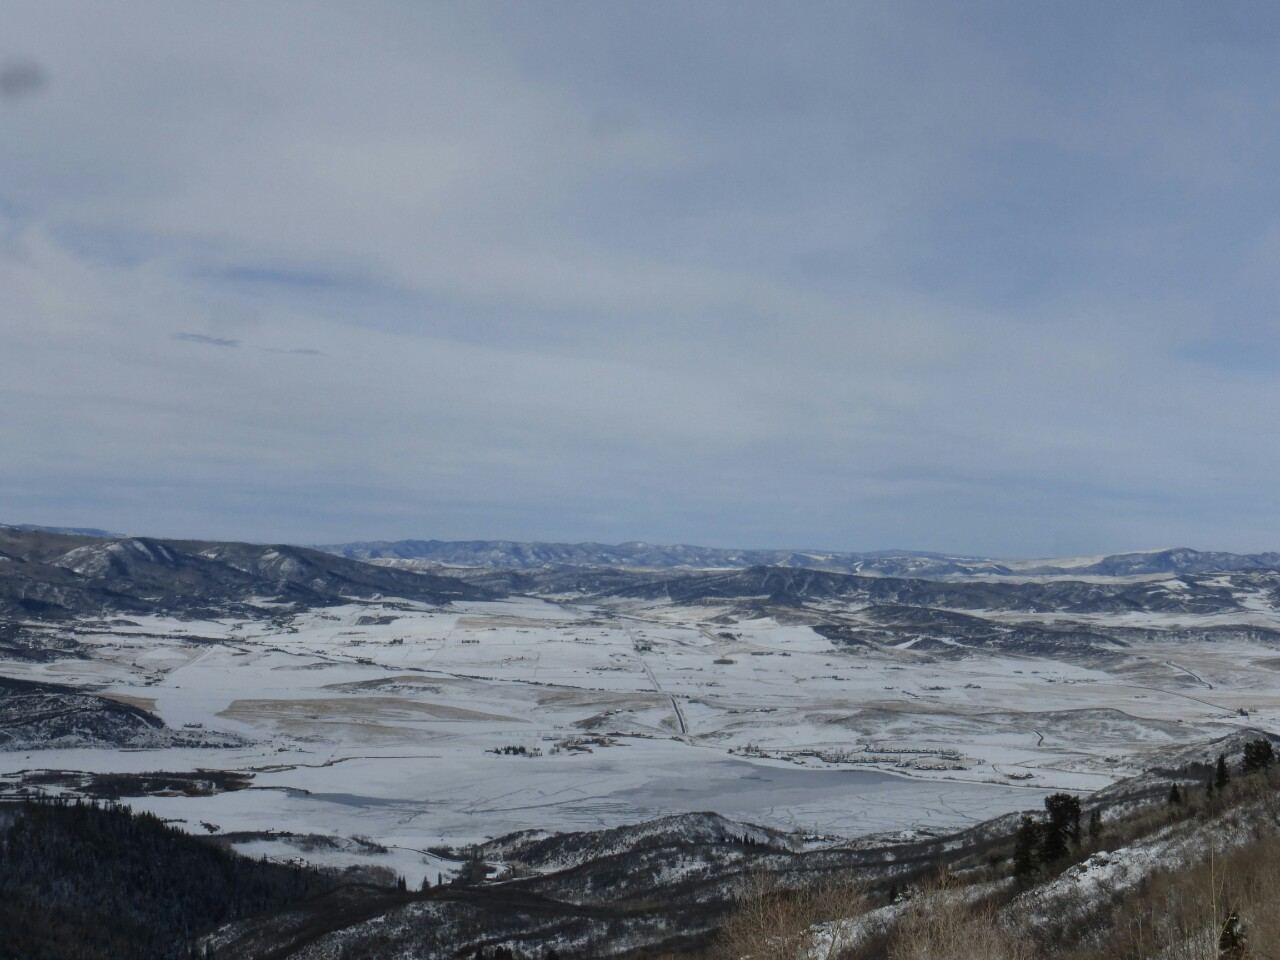 To the right was The Yampa Valley